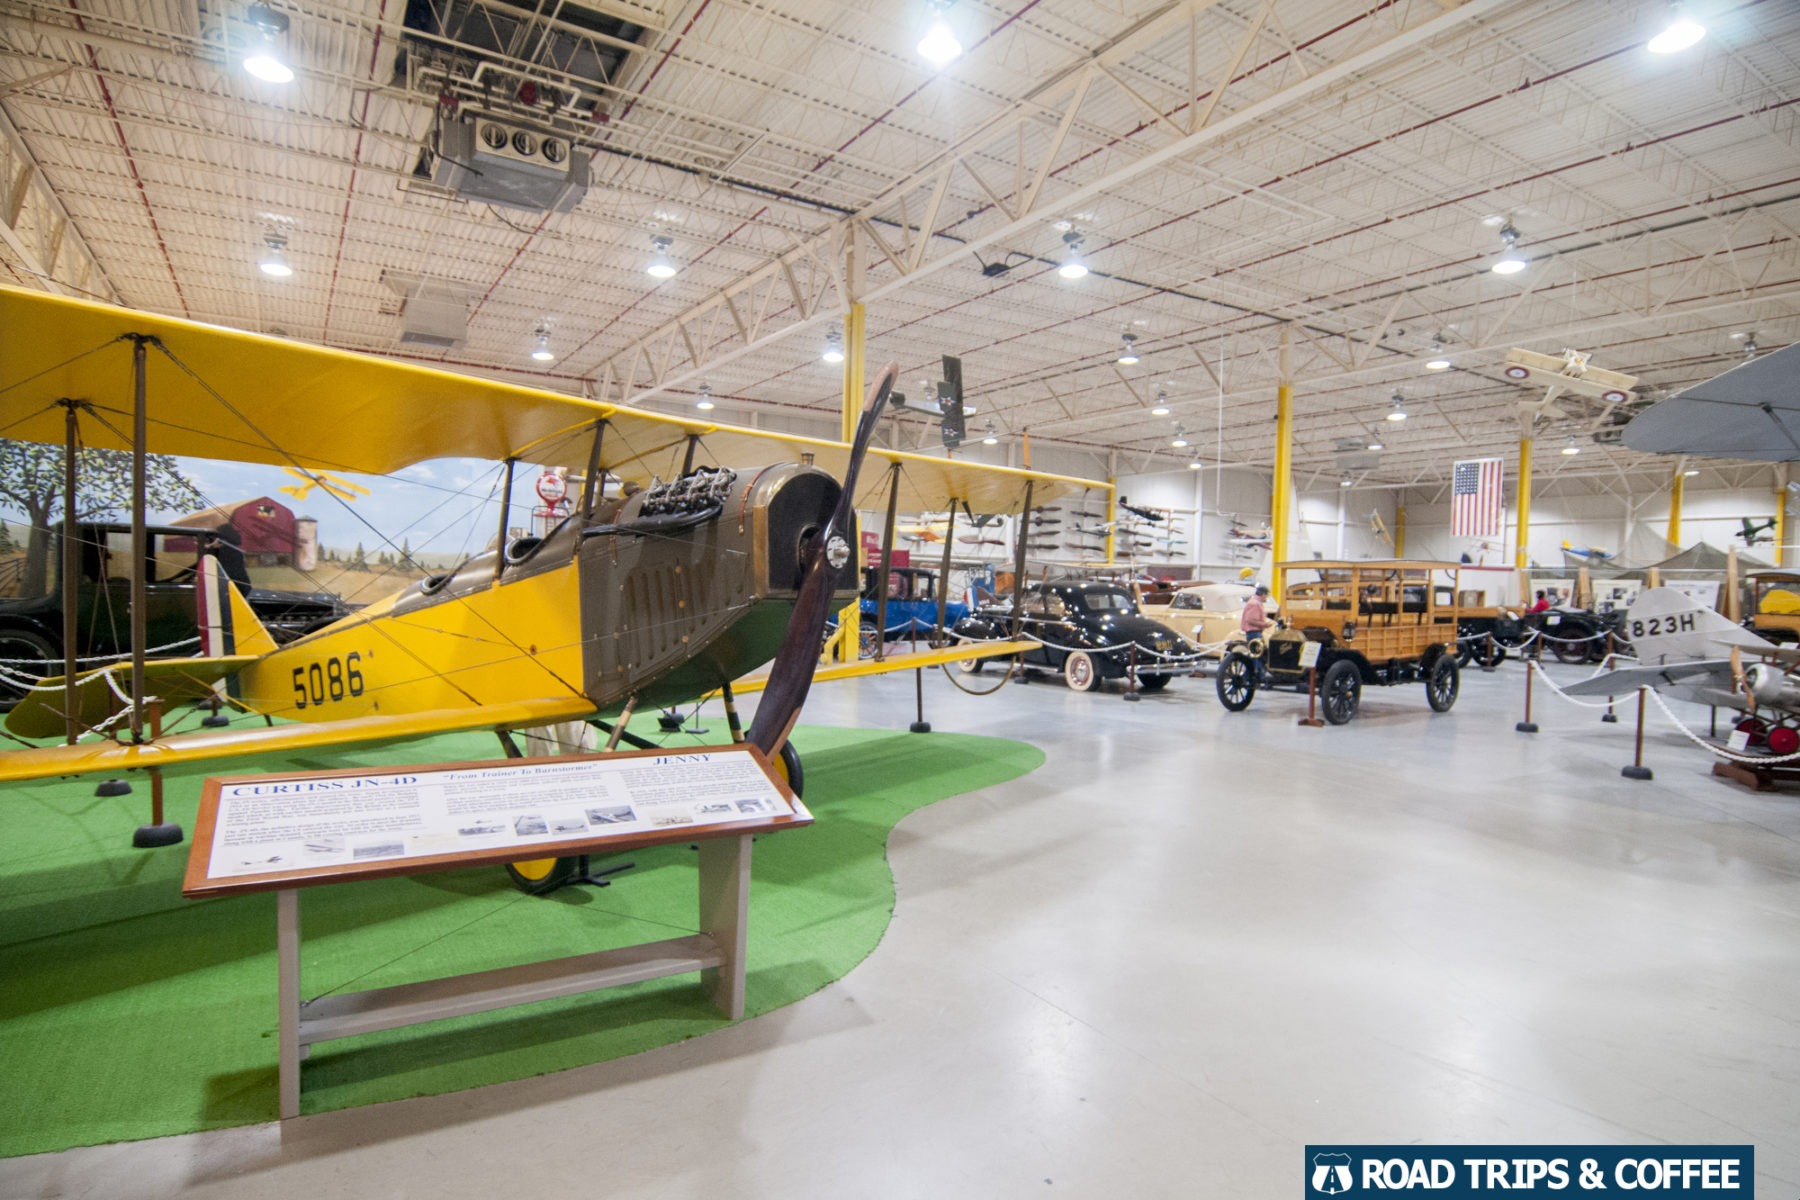 Several large planes and cars and display inside the cavernous Glenn H. Curtiss Museum in Hammondsport, New York